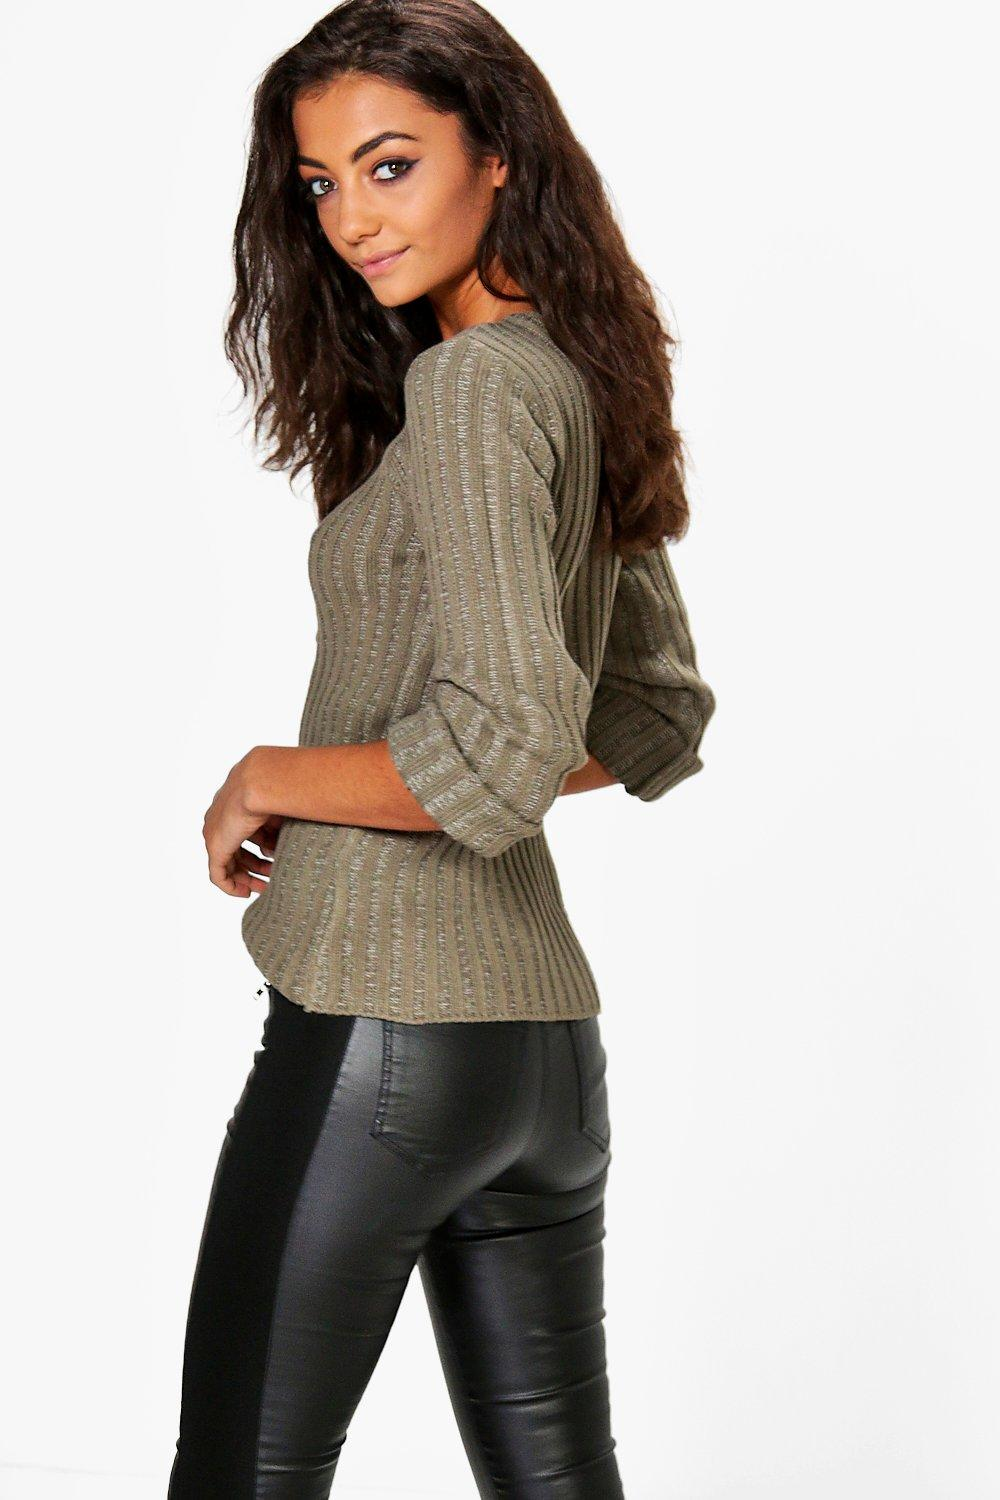 Find great deals on eBay for Womens Pants Jumper in Women's Pants, Clothing, Shoes and Accessories. Shop with confidence.